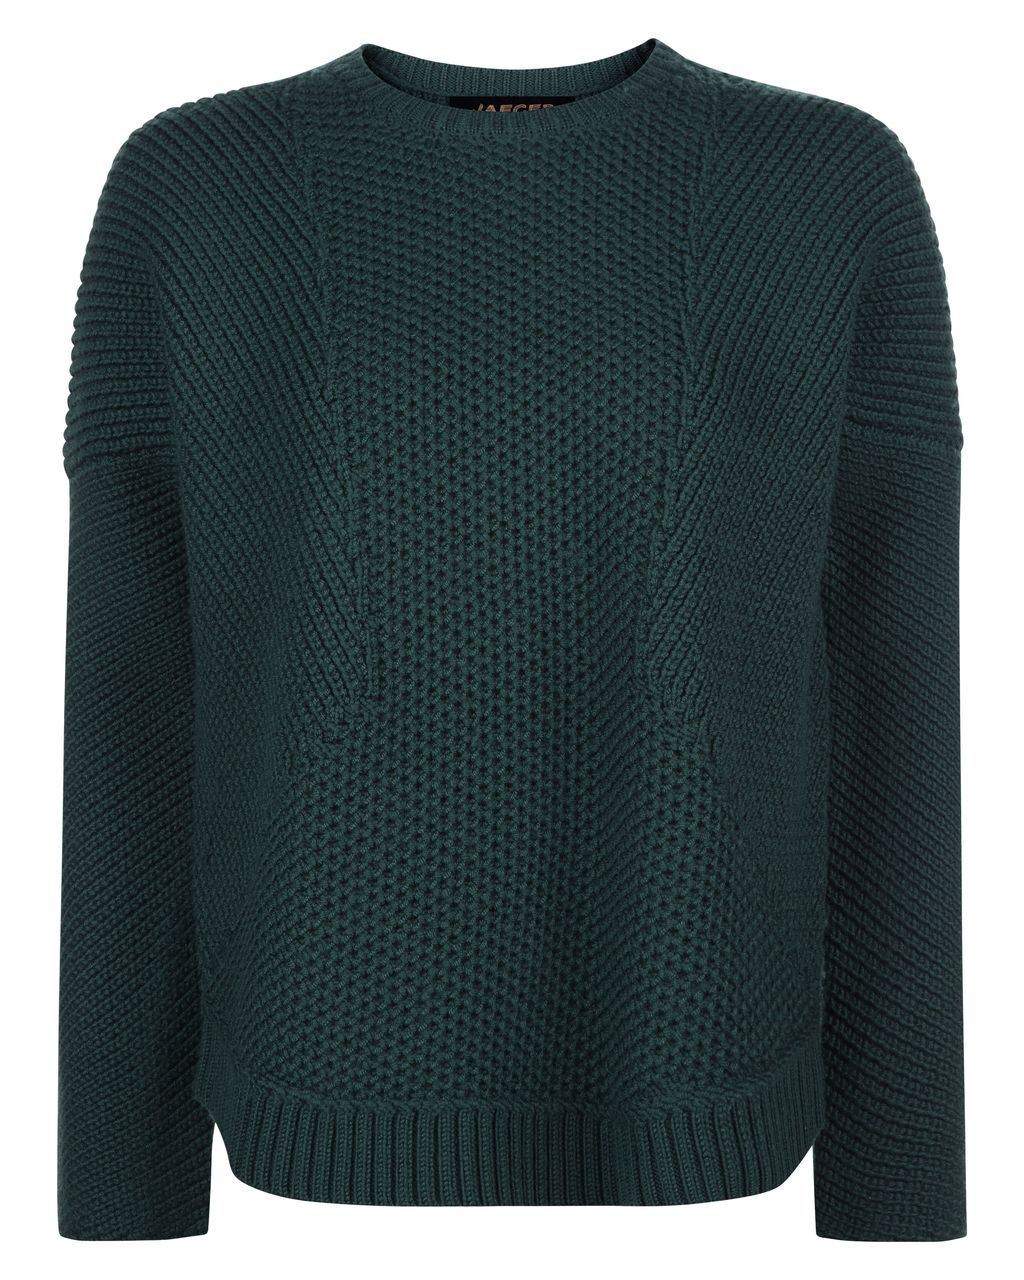 Wool Textured Block Sweater, Green - sleeve style: dolman/batwing; pattern: plain; style: standard; predominant colour: dark green; occasions: casual, work, creative work; length: standard; fibres: wool - 100%; fit: standard fit; neckline: crew; sleeve length: long sleeve; texture group: knits/crochet; pattern type: knitted - fine stitch; season: a/w 2016; wardrobe: highlight